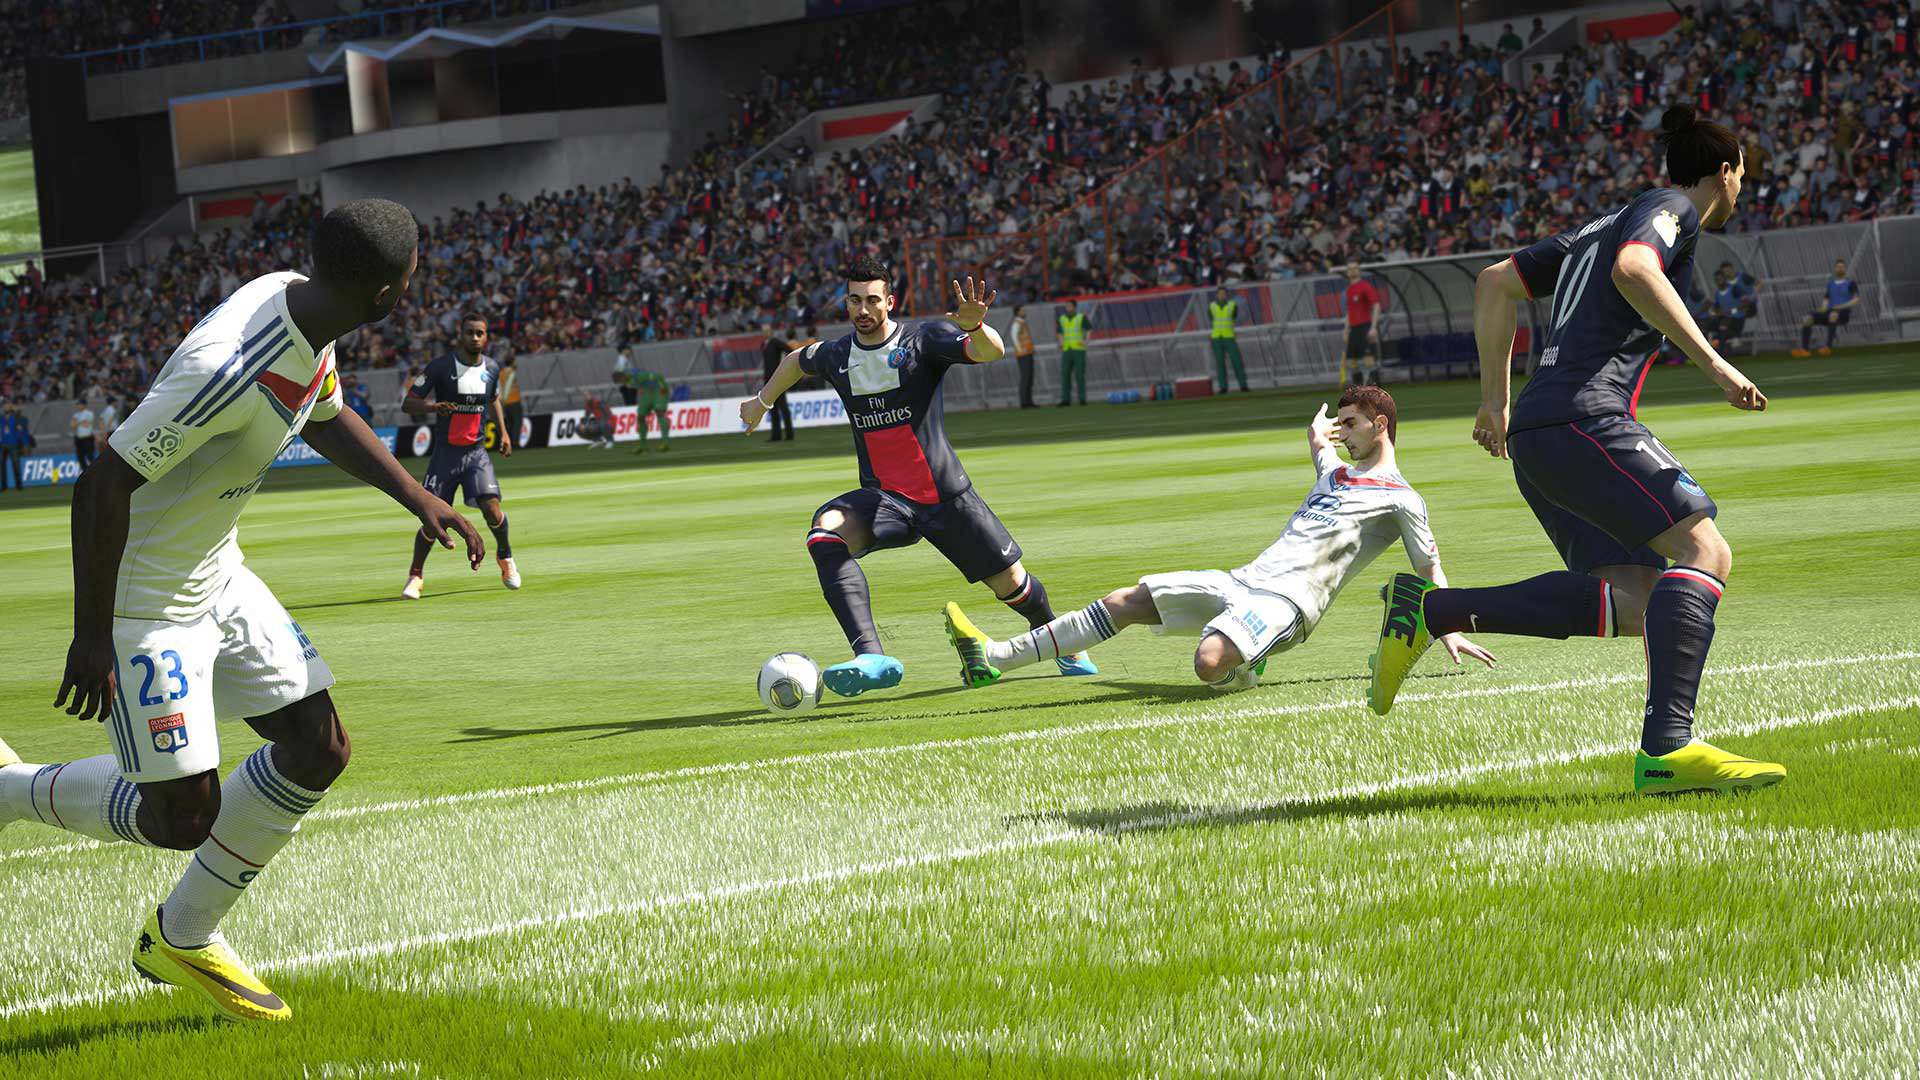 Forecasting The FIFA 16 Release Date